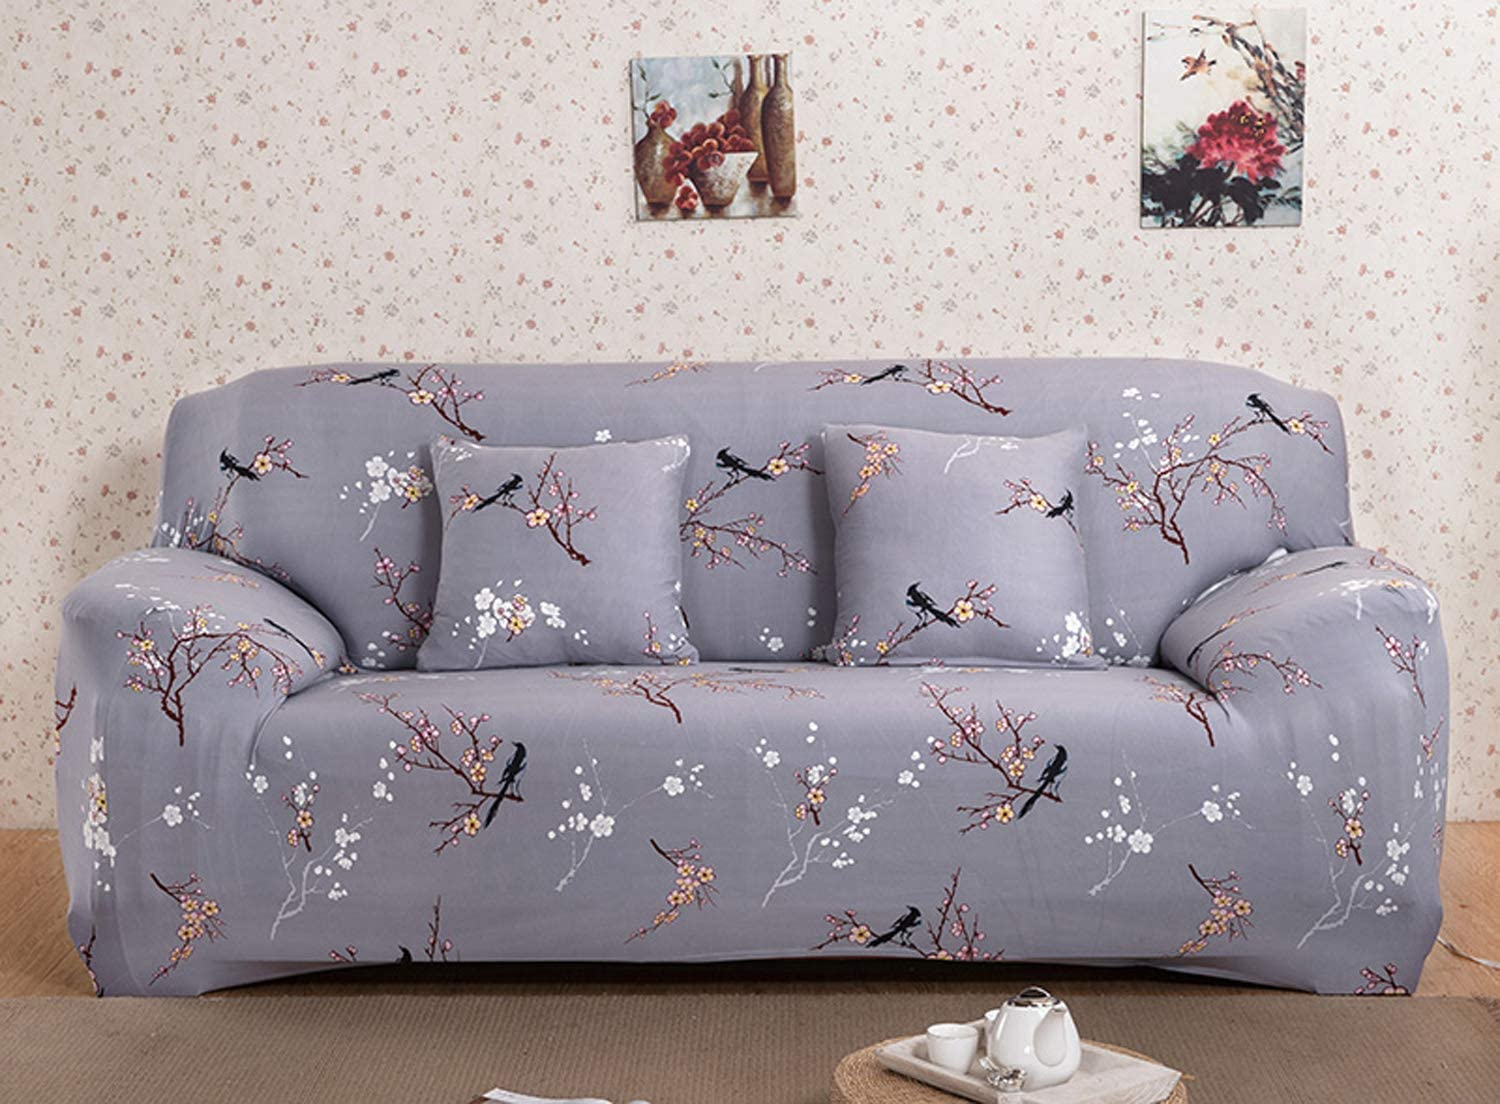 WOWTOY Sofa Cover 1 2 3 4 Seater Slip Cover Sofa Couch Stretch Elastic Fabric Sofa Protector